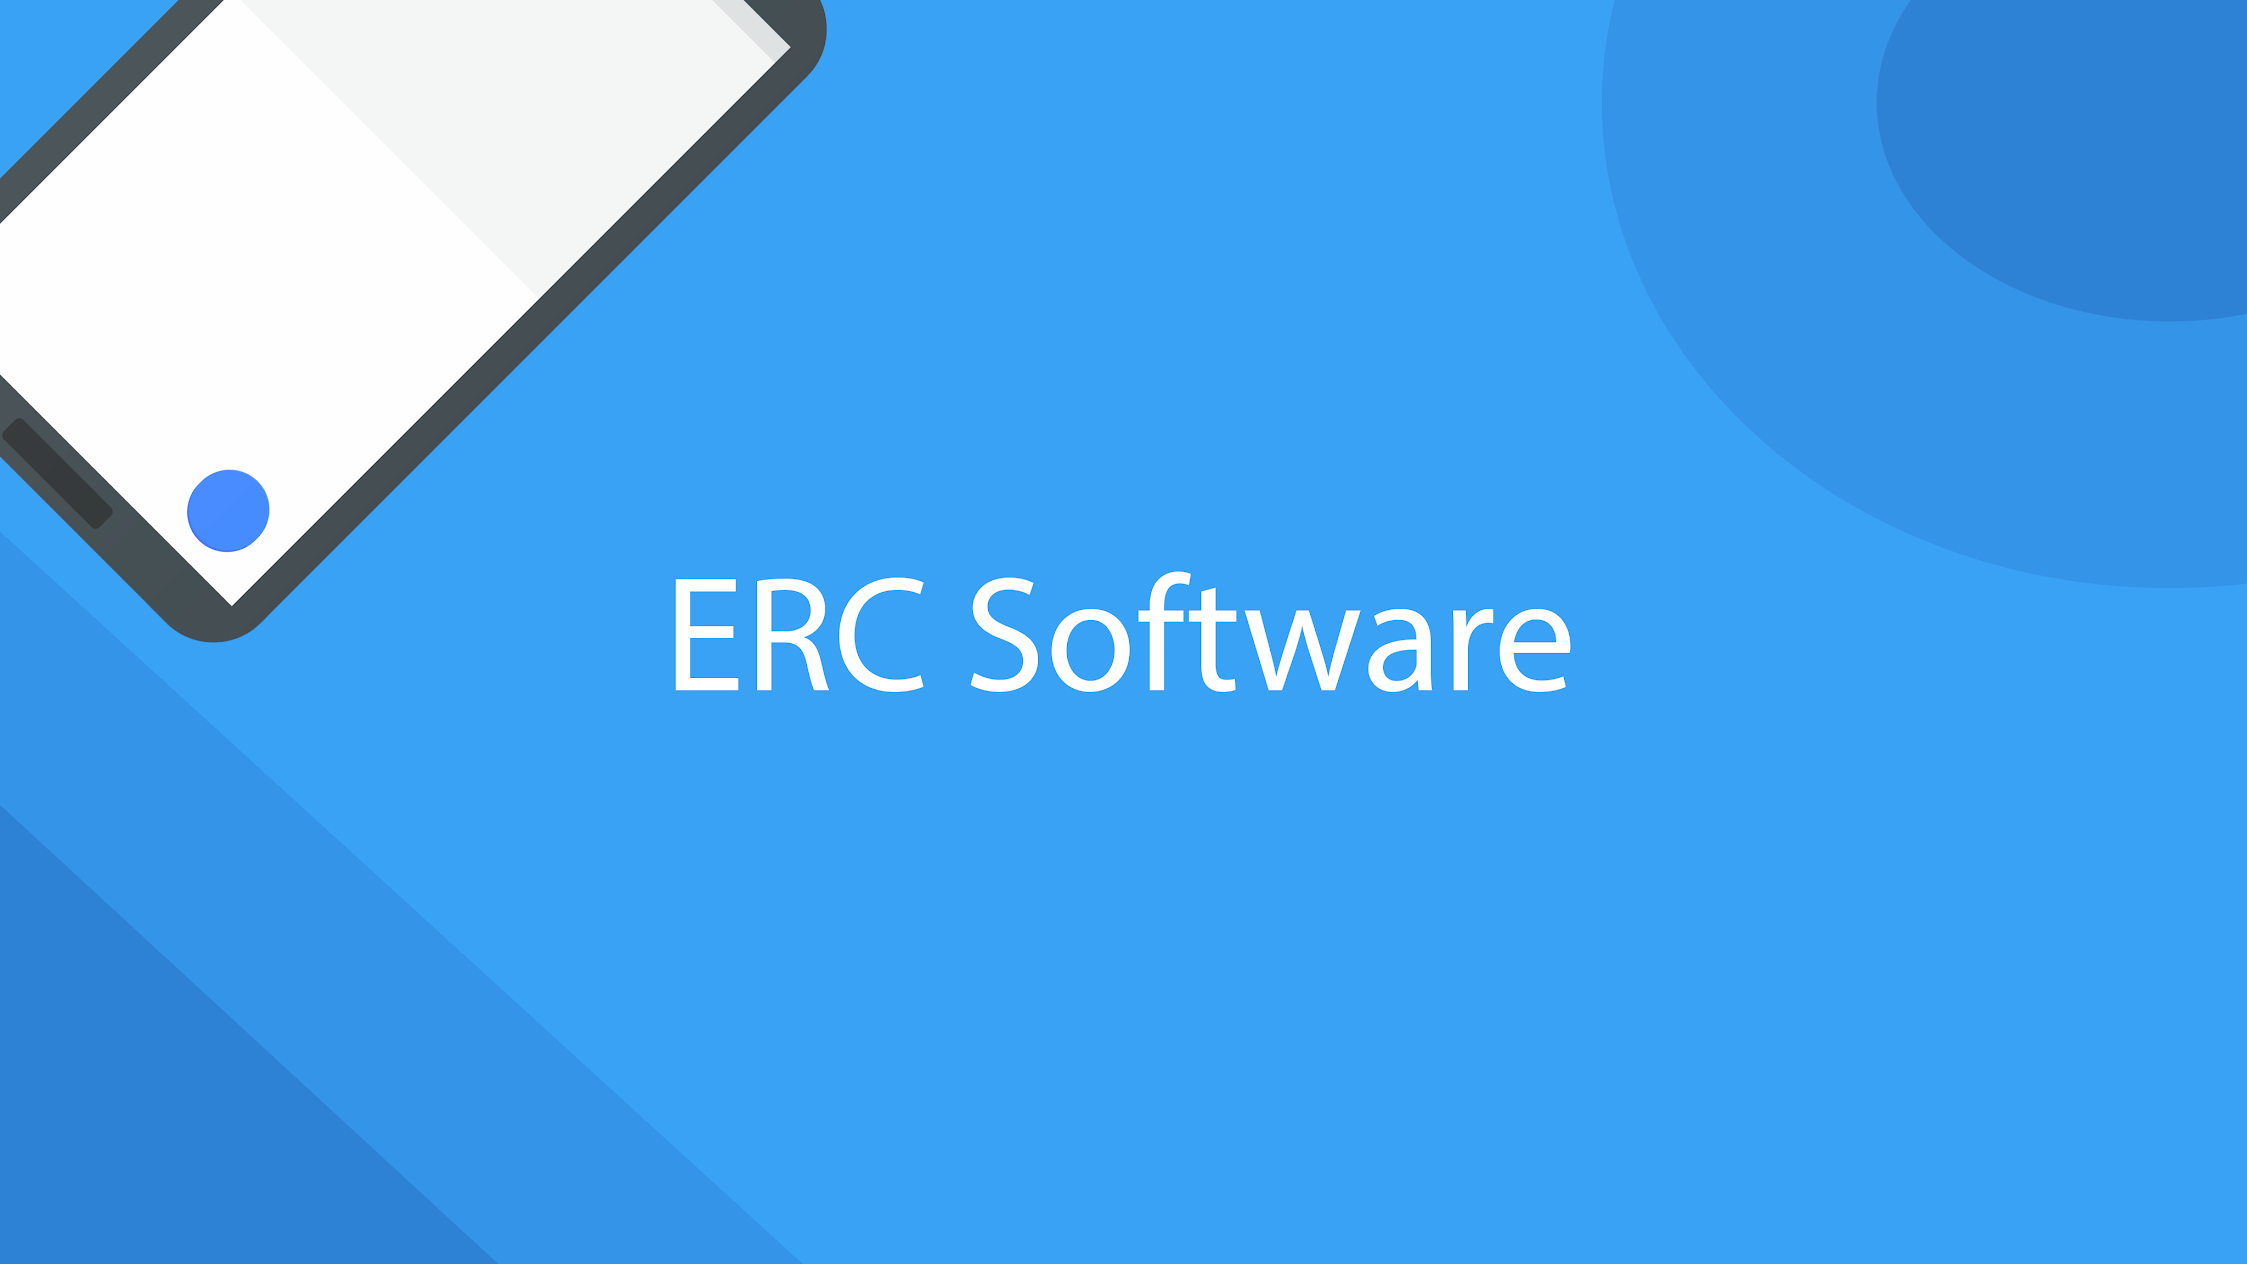 ERC Software